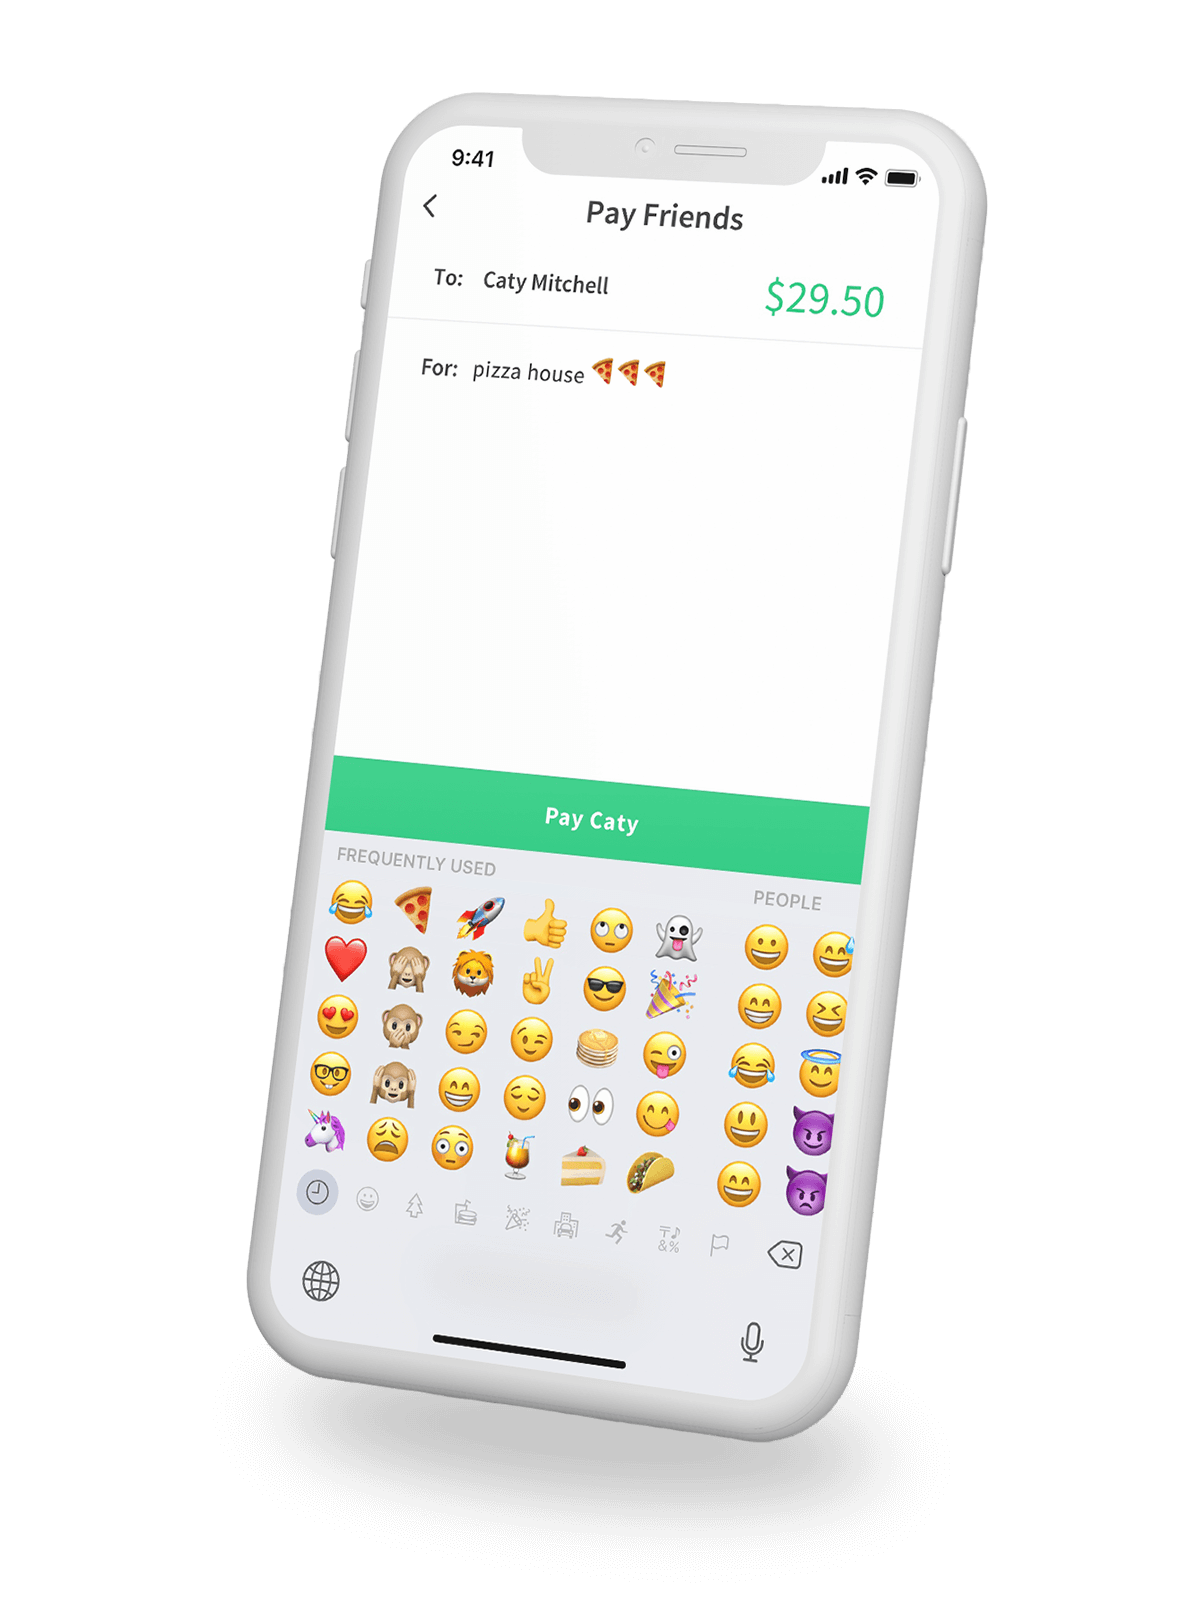 Pay Friends Is A Payment Feature That Built Into Your Mobile Bank Account Instantly Send Money To Family Or Roommates When They Open